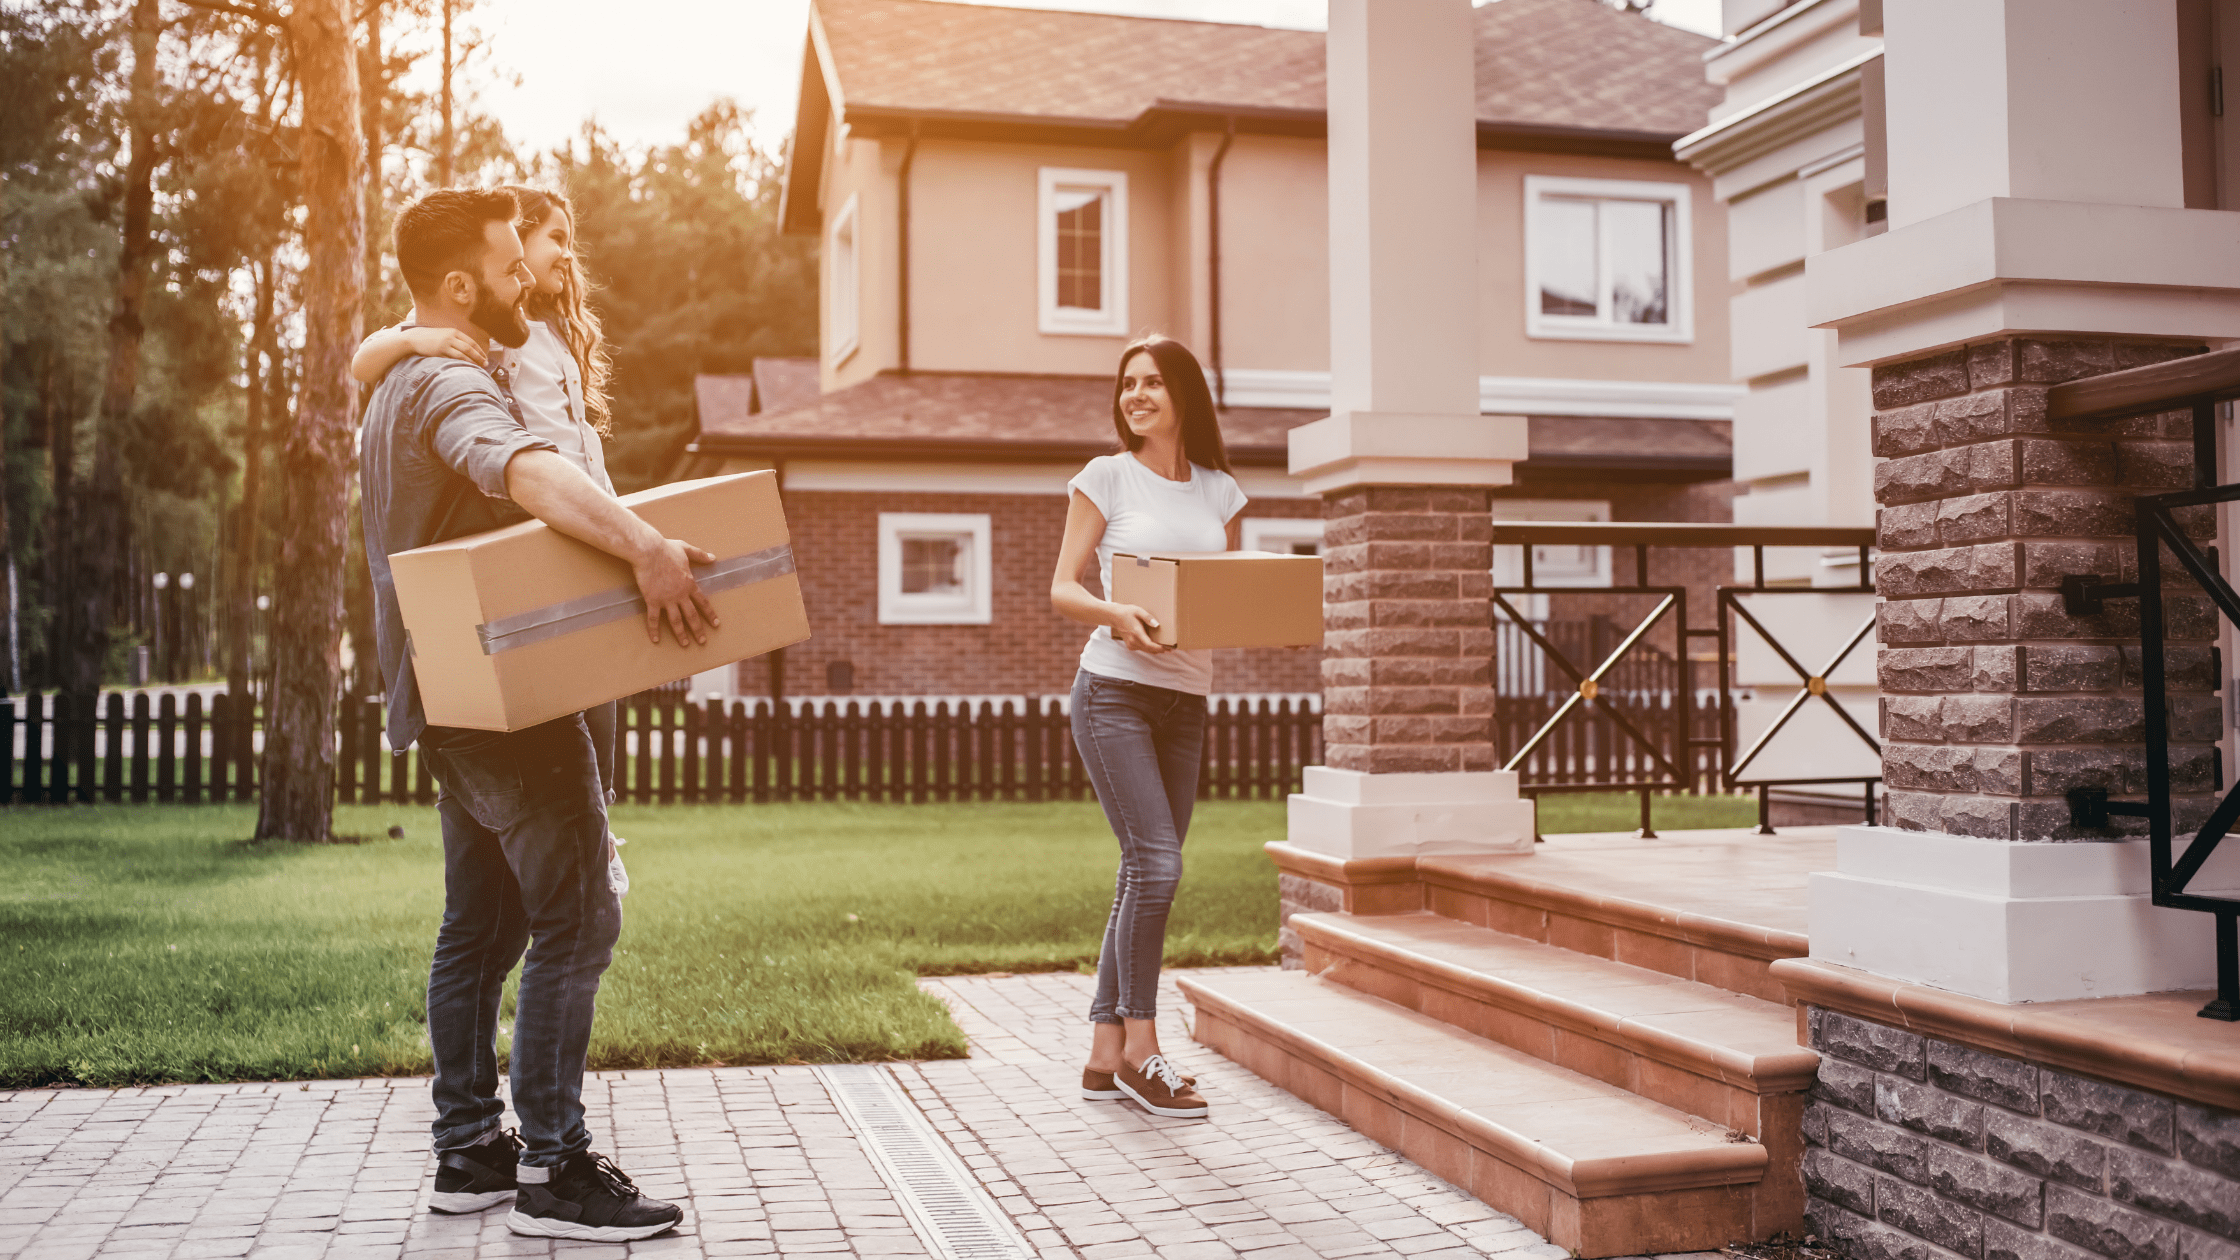 STAGE A HOME TO SELL TO MILLENNIALS